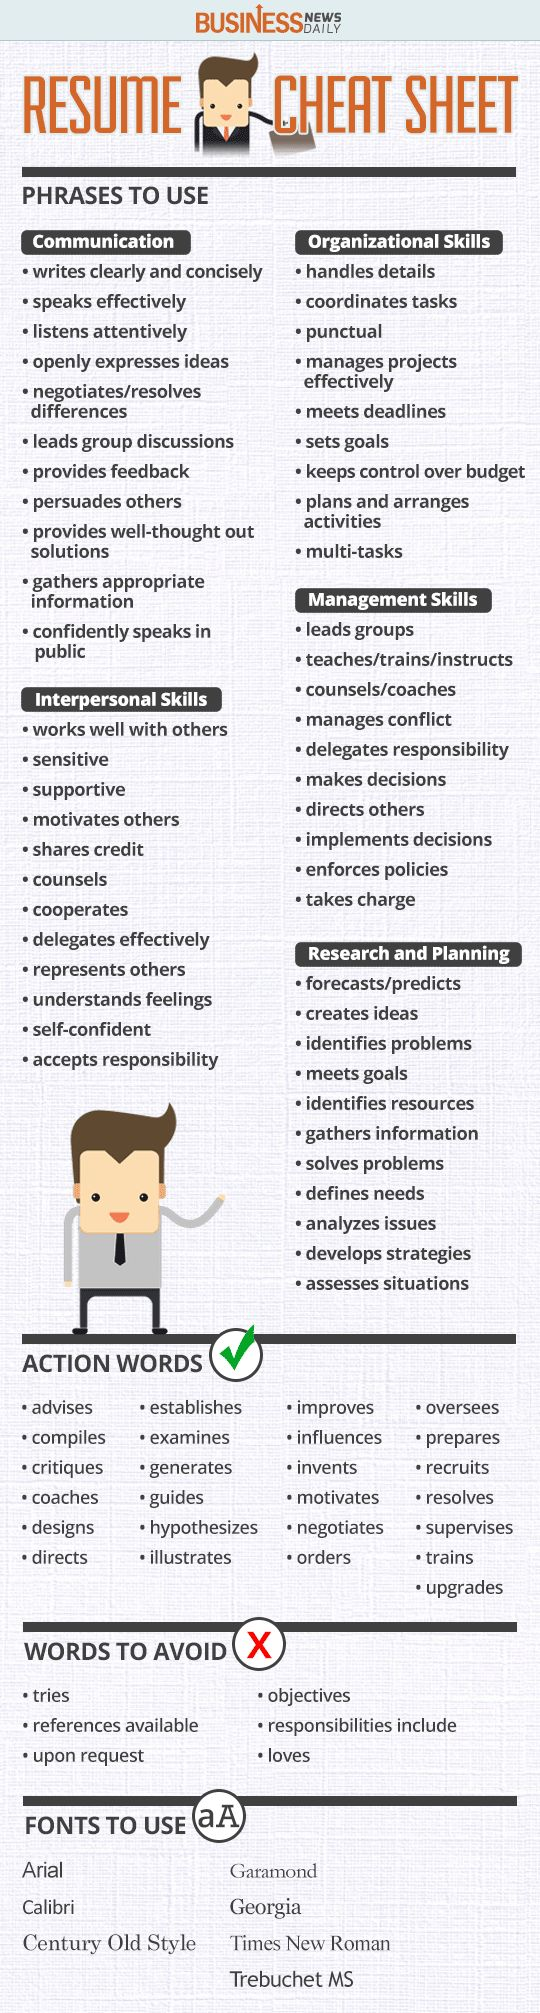 Opposenewapstandardsus  Seductive  Ideas About Resume On Pinterest  Cv Format Resume Cv And  With Lovely Resume Cheat Sheet Infographic Andrews Almost Done With A Complete Unit On Employment Which With Astounding Musical Theatre Resume Also Dance Teacher Resume In Addition Entry Level Administrative Assistant Resume And Examples Of Skills On Resume As Well As Rental Resume Additionally Computer Science Resume Template From Pinterestcom With Opposenewapstandardsus  Lovely  Ideas About Resume On Pinterest  Cv Format Resume Cv And  With Astounding Resume Cheat Sheet Infographic Andrews Almost Done With A Complete Unit On Employment Which And Seductive Musical Theatre Resume Also Dance Teacher Resume In Addition Entry Level Administrative Assistant Resume From Pinterestcom